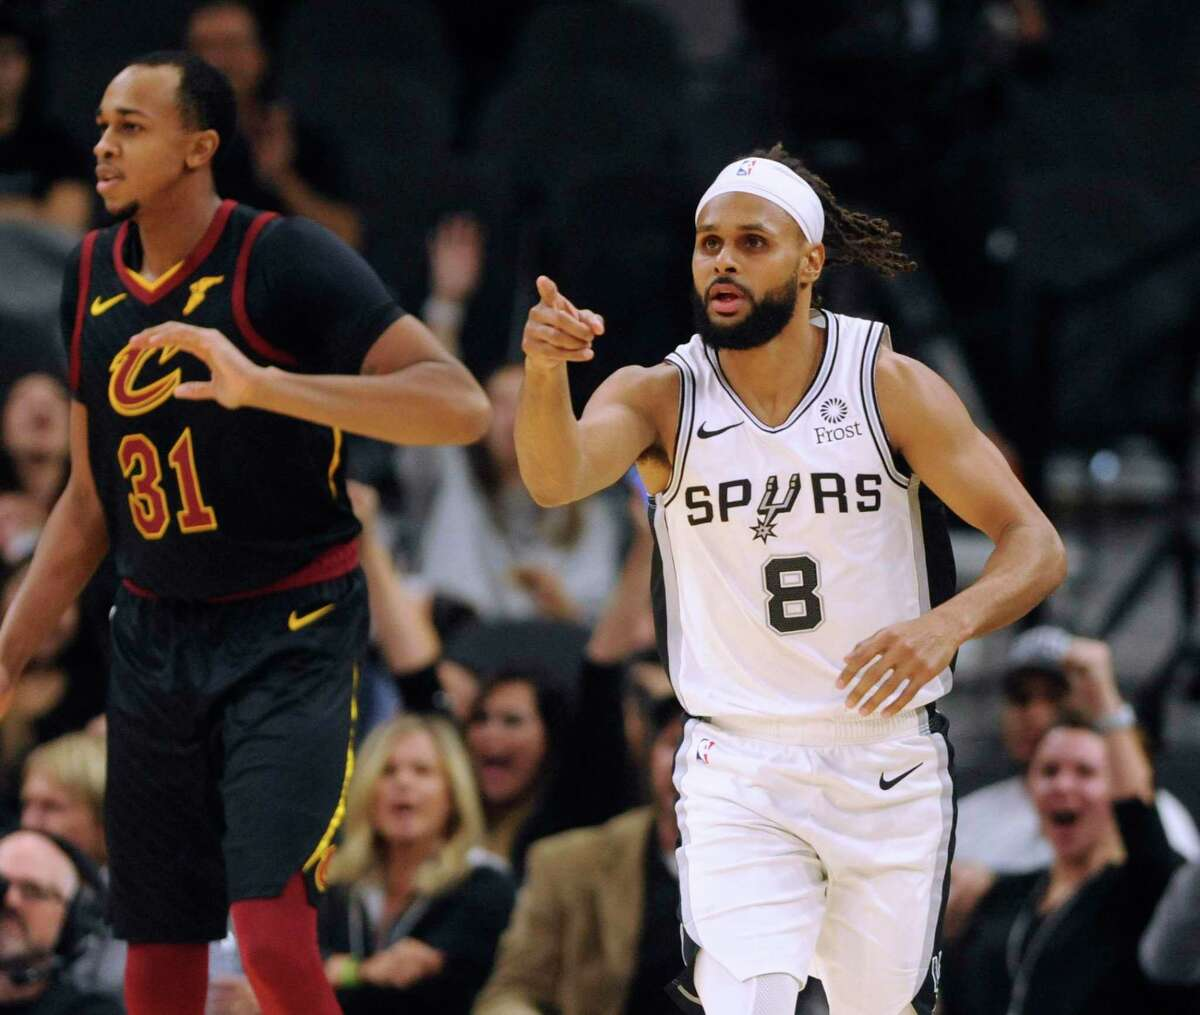 Spurs player Patty Mills will help launch the city's inaugural domestic violence symposium later this month.